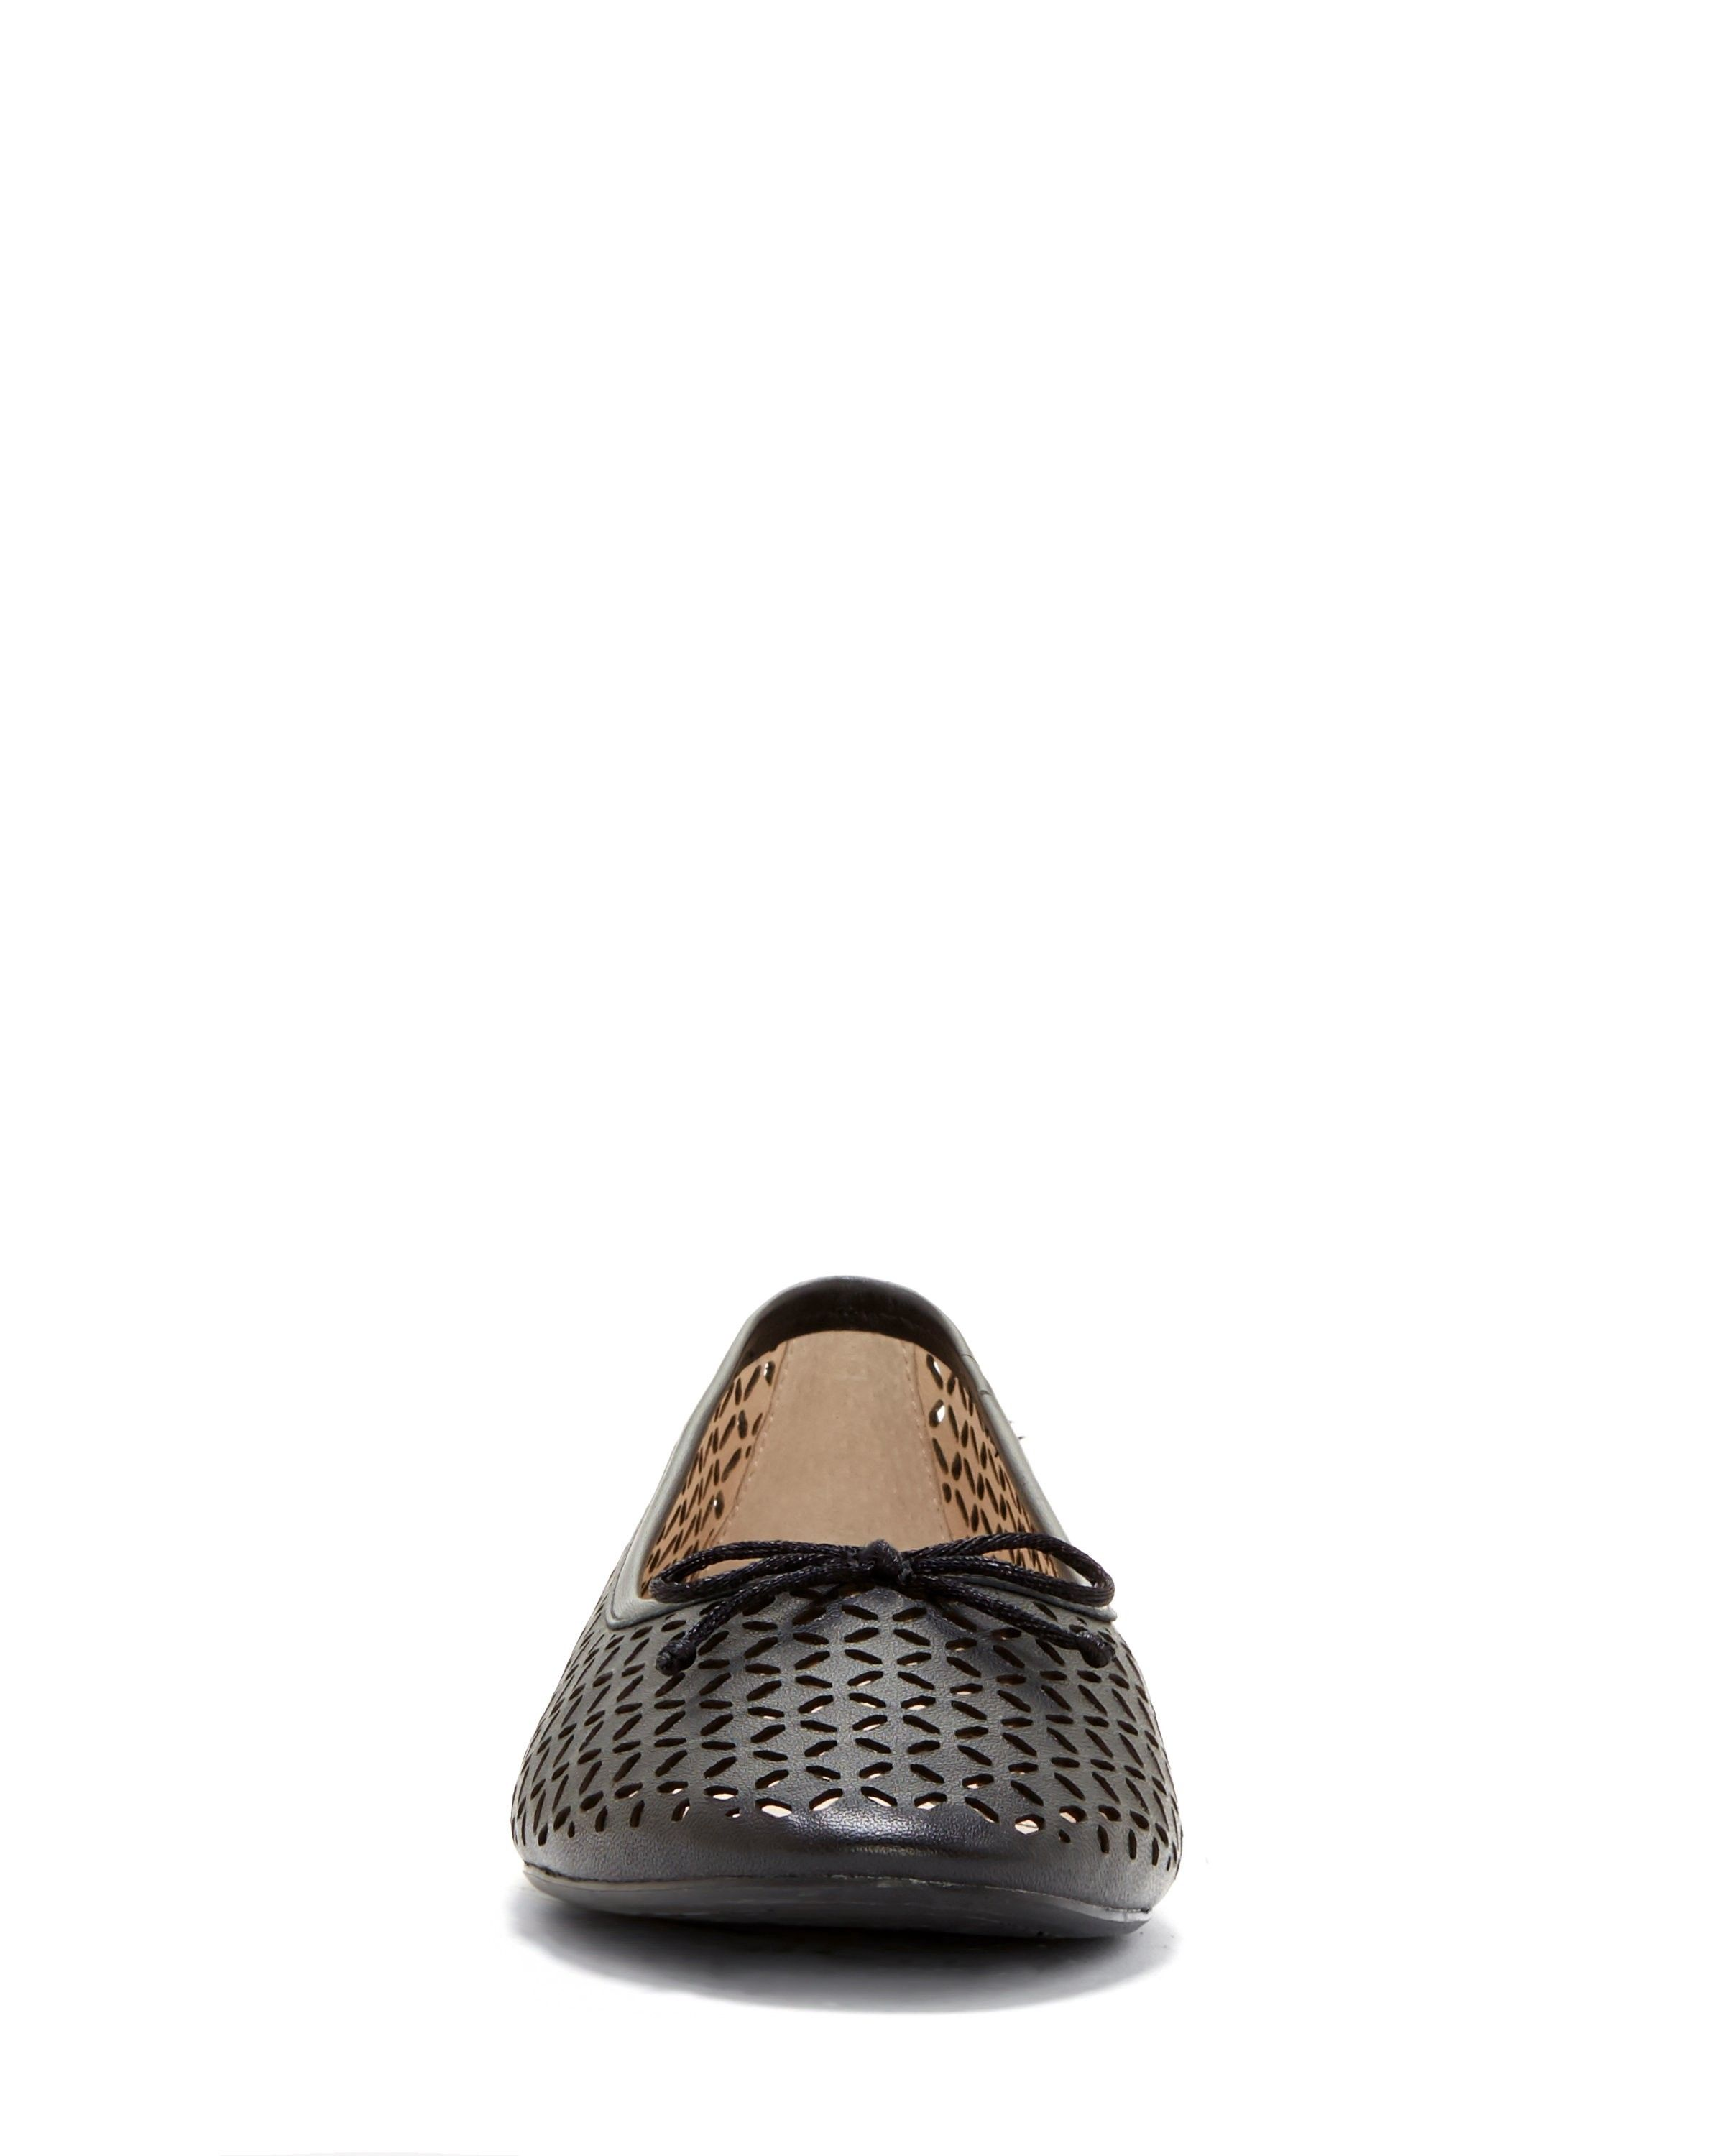 3ae643a6a9 Vince Camuto Louise Et Cie Congo – Perforated Ballet Flat - Platina  Metallic Sheep Nappa 9.5